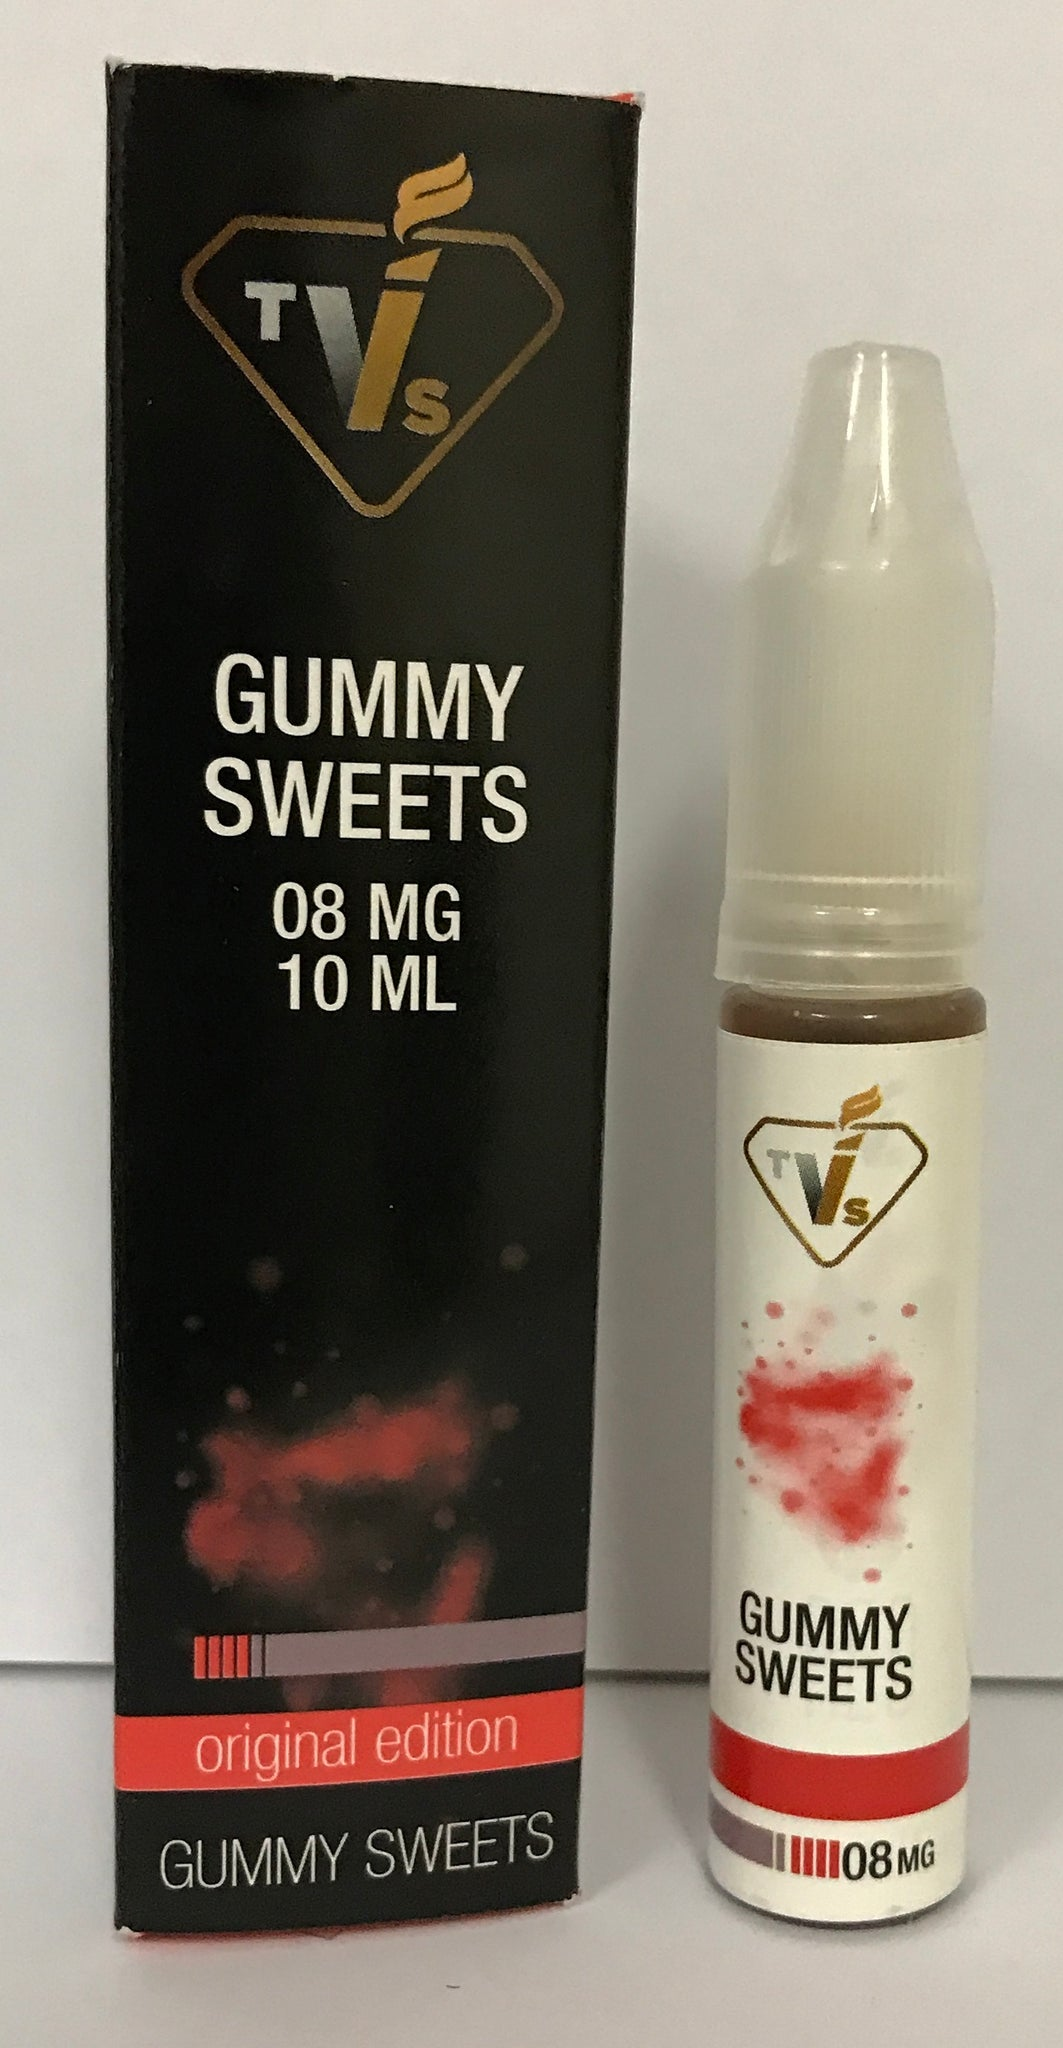 TVS Gummy Sweets 10ml